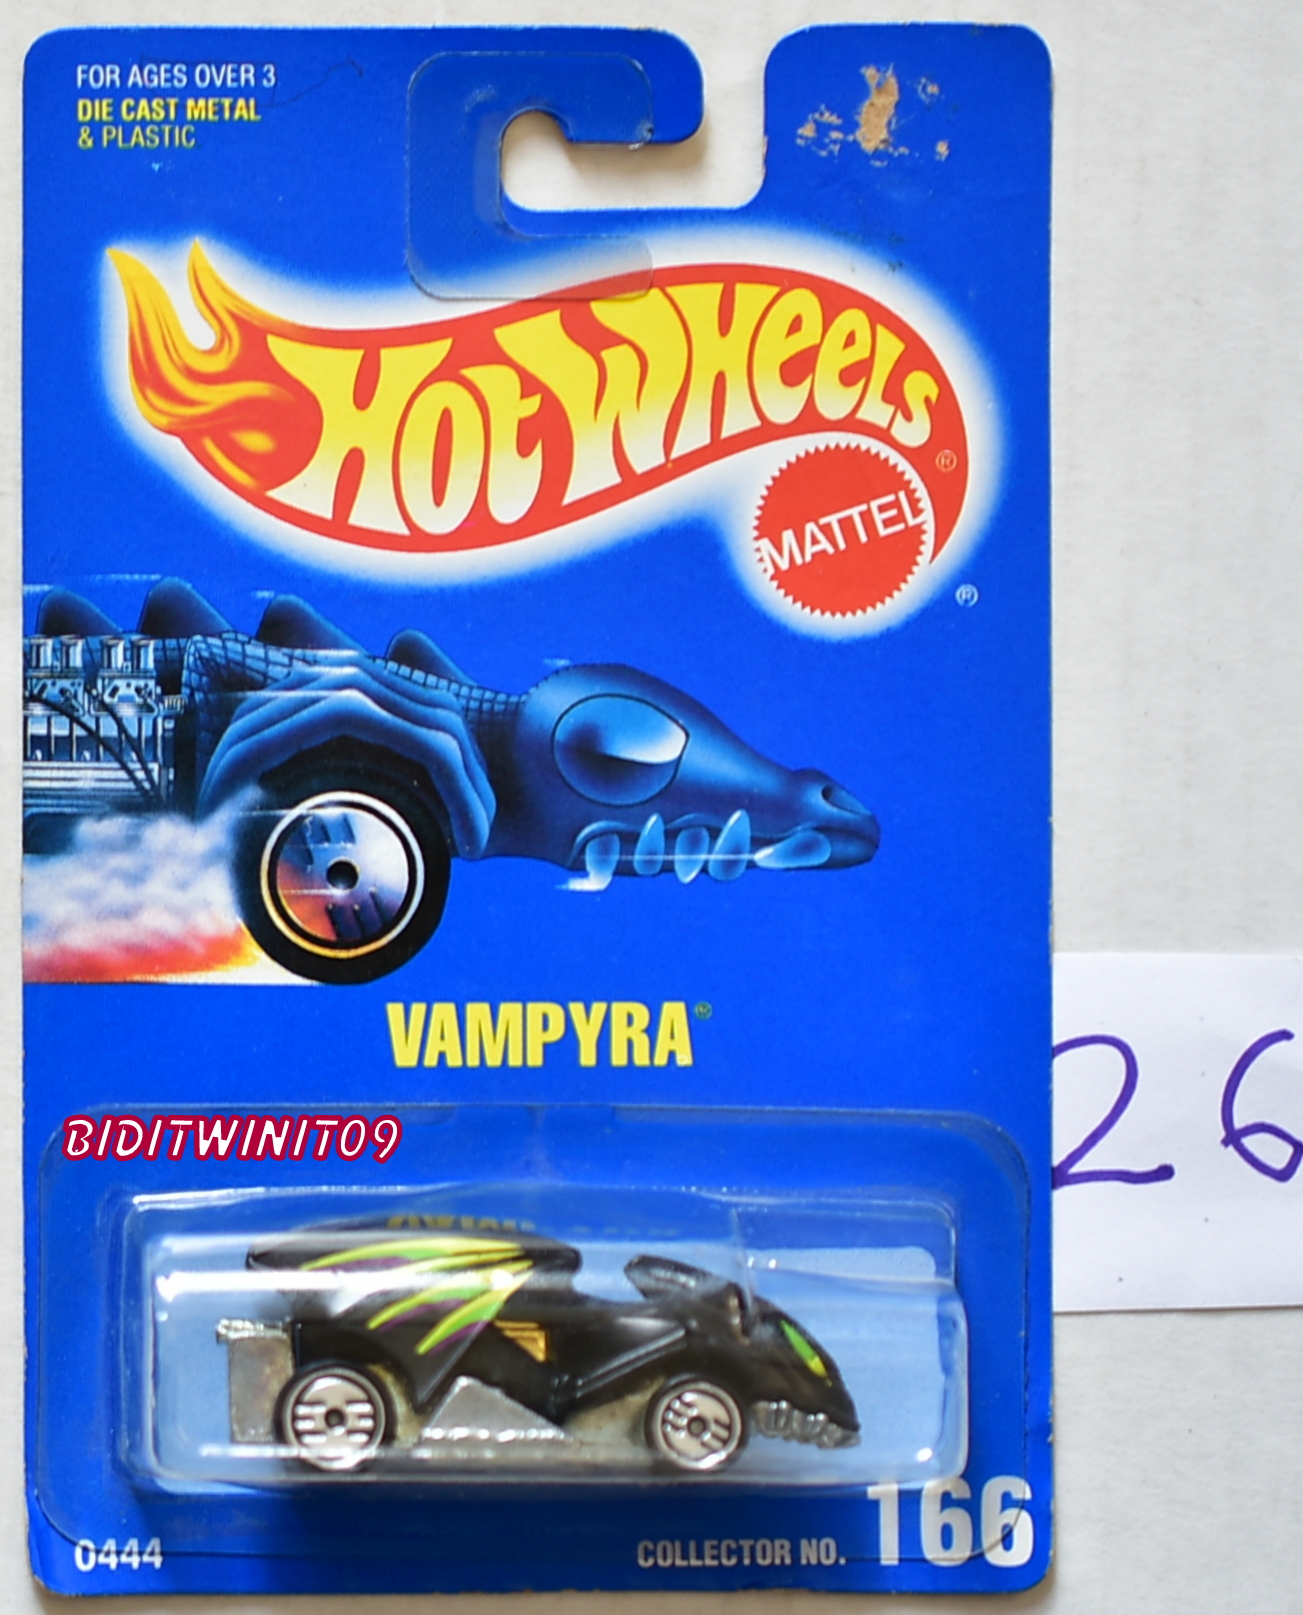 HOT WHEELS 1990 BLUE CARD COLLECT. #166 VAMPYRA W/ UH WHEELS E+